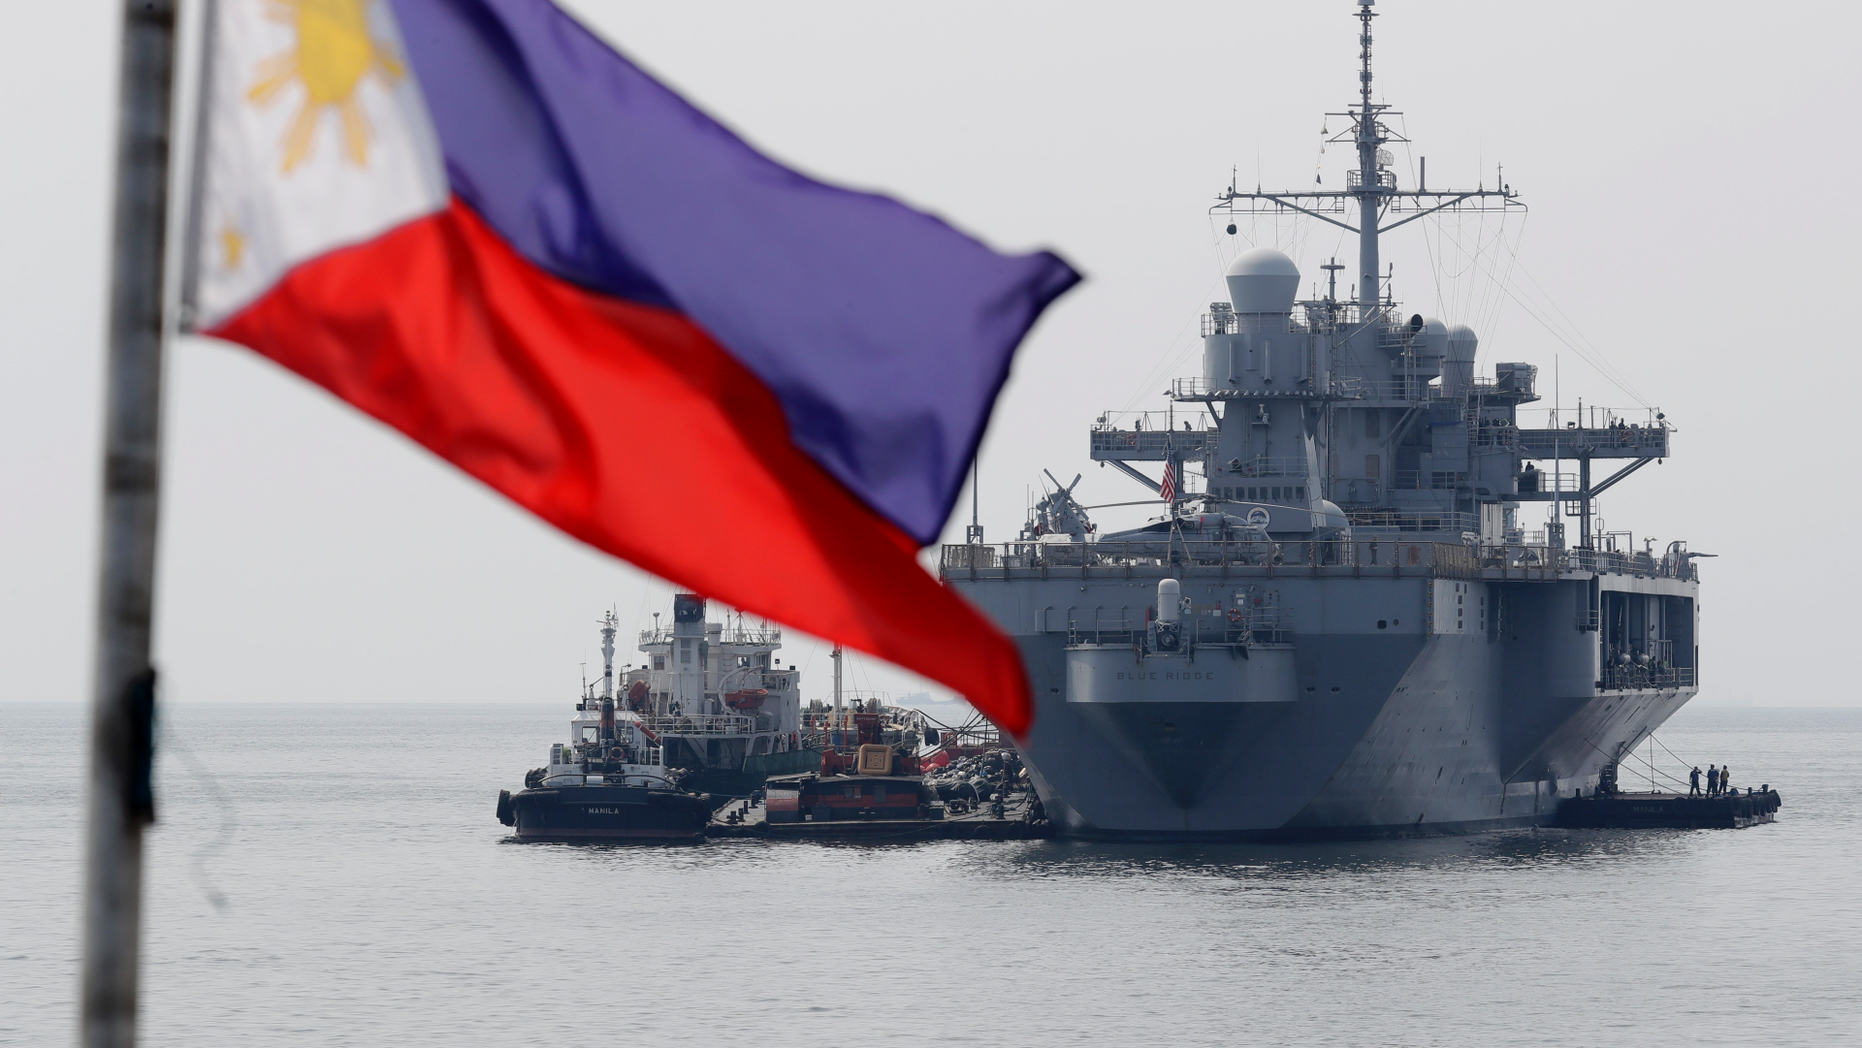 """The USS Blue Ridge (LCC-19), the U.S. 7th Fleet Flagship, is anchored off Manila Bay west of Manila, Philippines for a routine port call Wednesday, March 13, 2019. Capt. Eric Anduze, Commander of the USS Blue Ridge, renewed an American vow to """"sail, fly and operate wherever the law allows us to"""" amid China's objection to U.S. military presence in the disputed South China Sea. (AP Photo/Bullit Marquez)"""